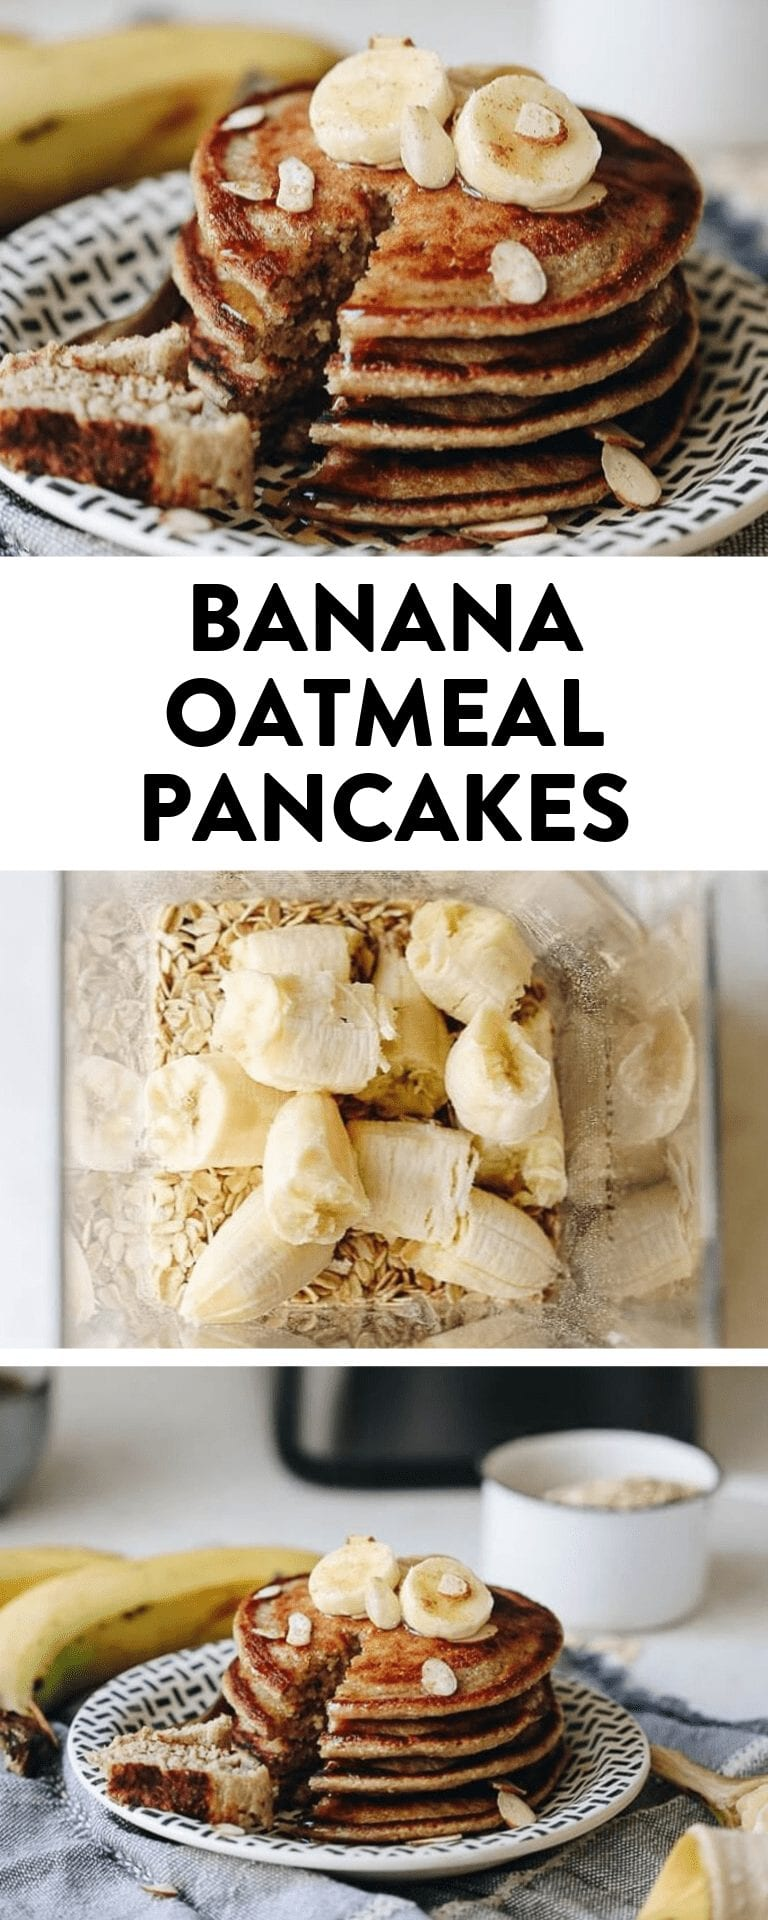 Easy clean-up and delicious flavor with these banana oatmeal pancakes that can be made entirely in the blender!